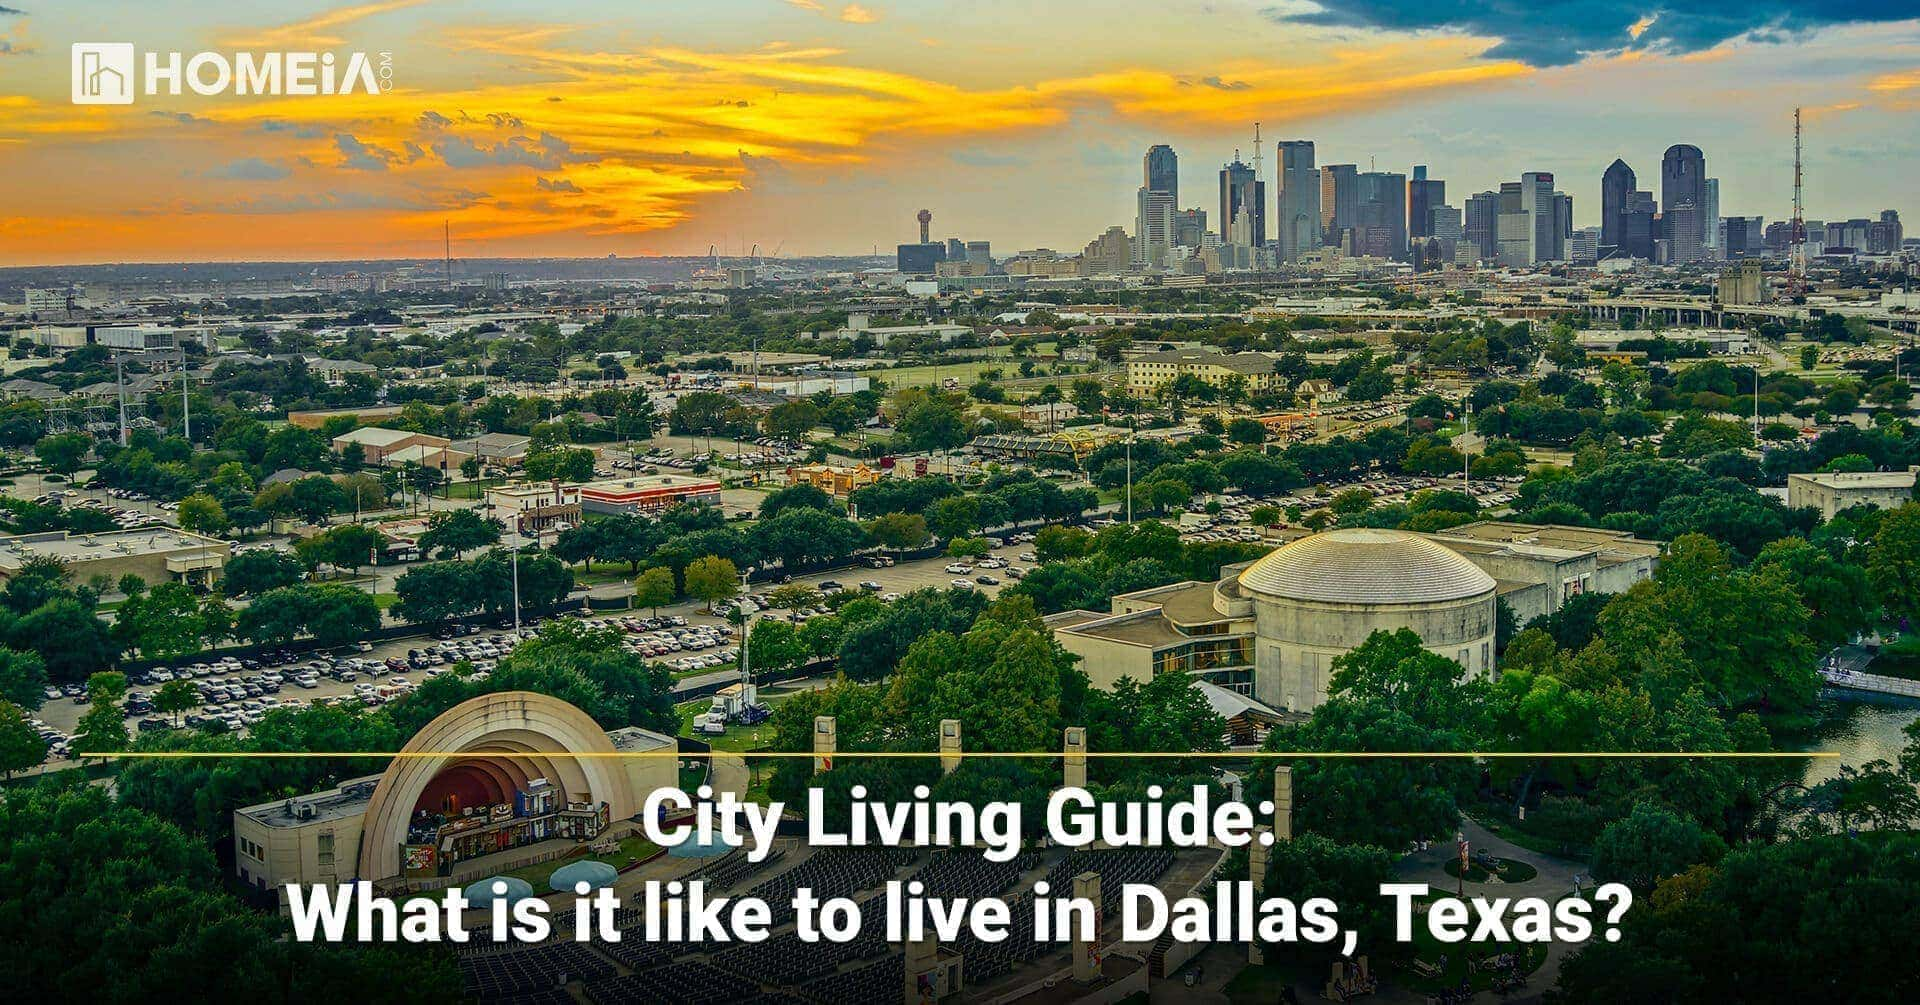 City Living Guide: What is it like to live in Dallas, Texas?